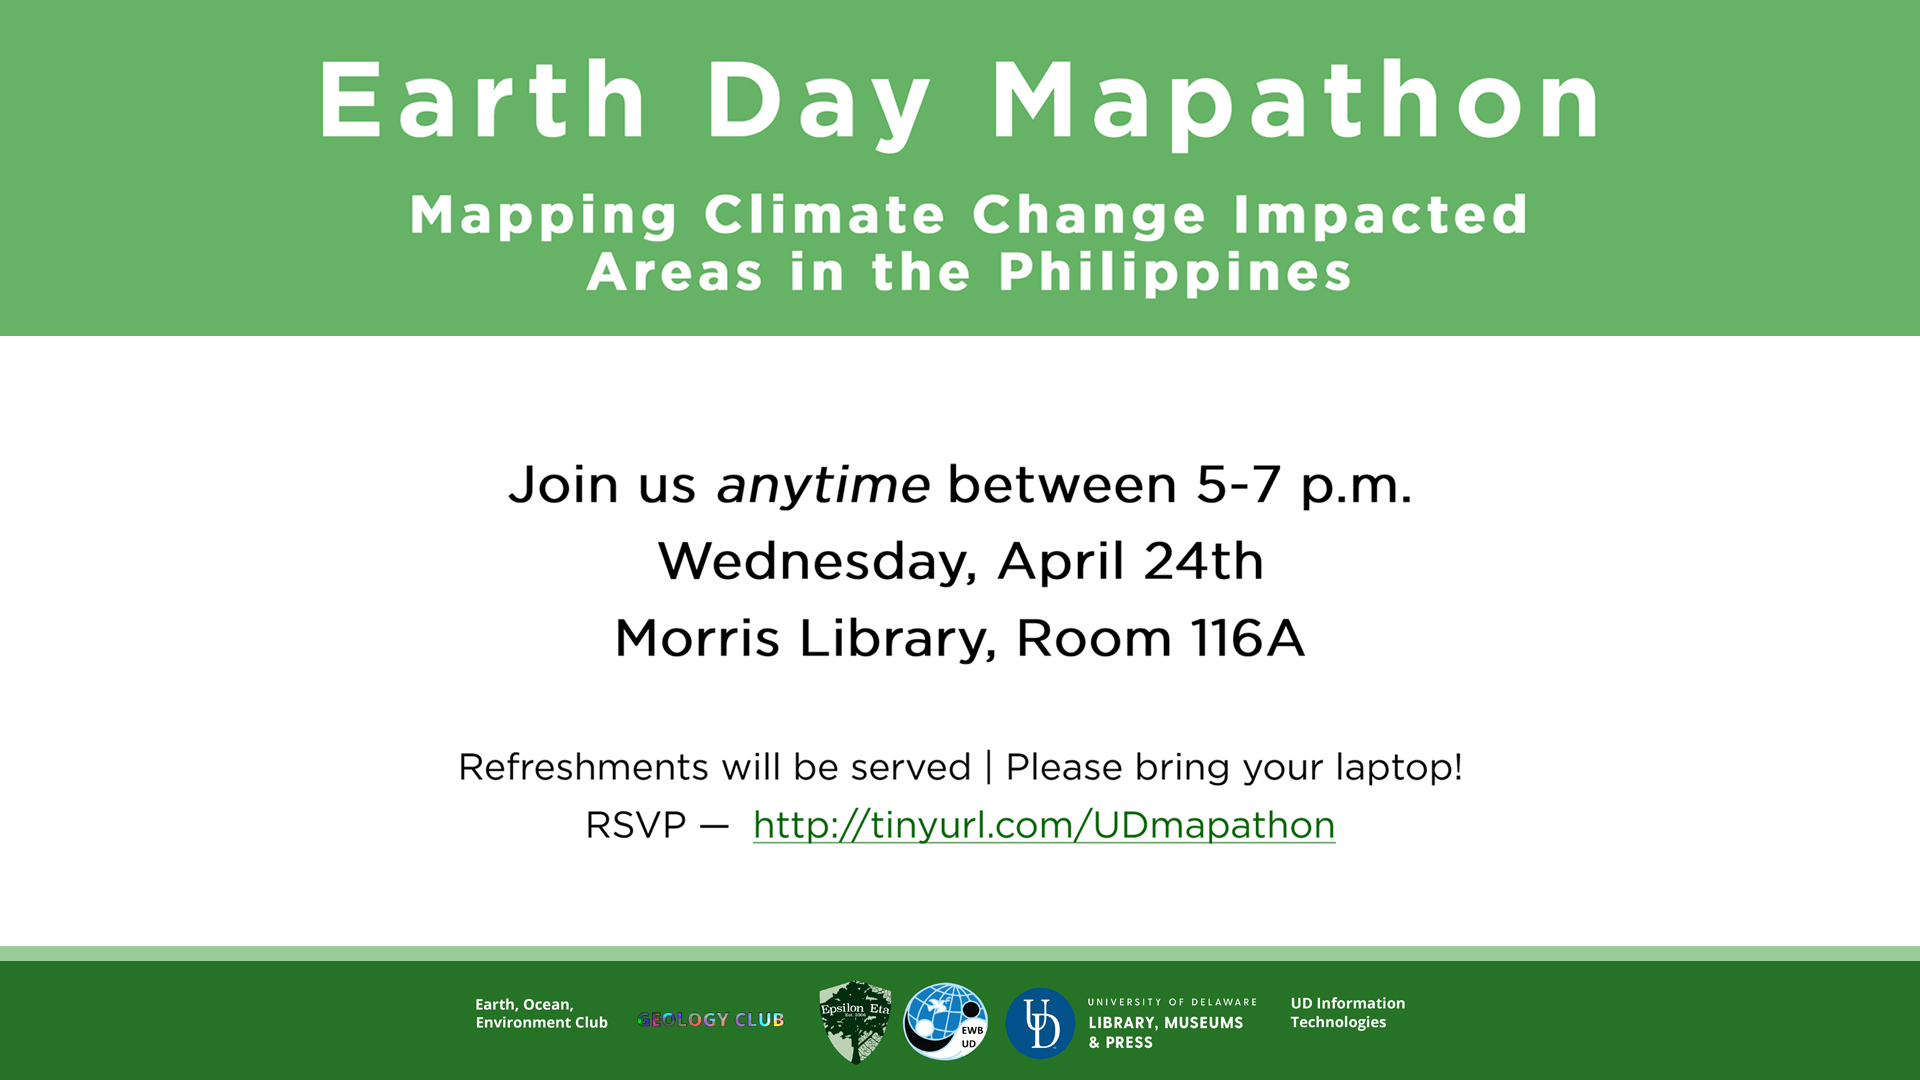 Promotional image for the Earth Day Mapathon